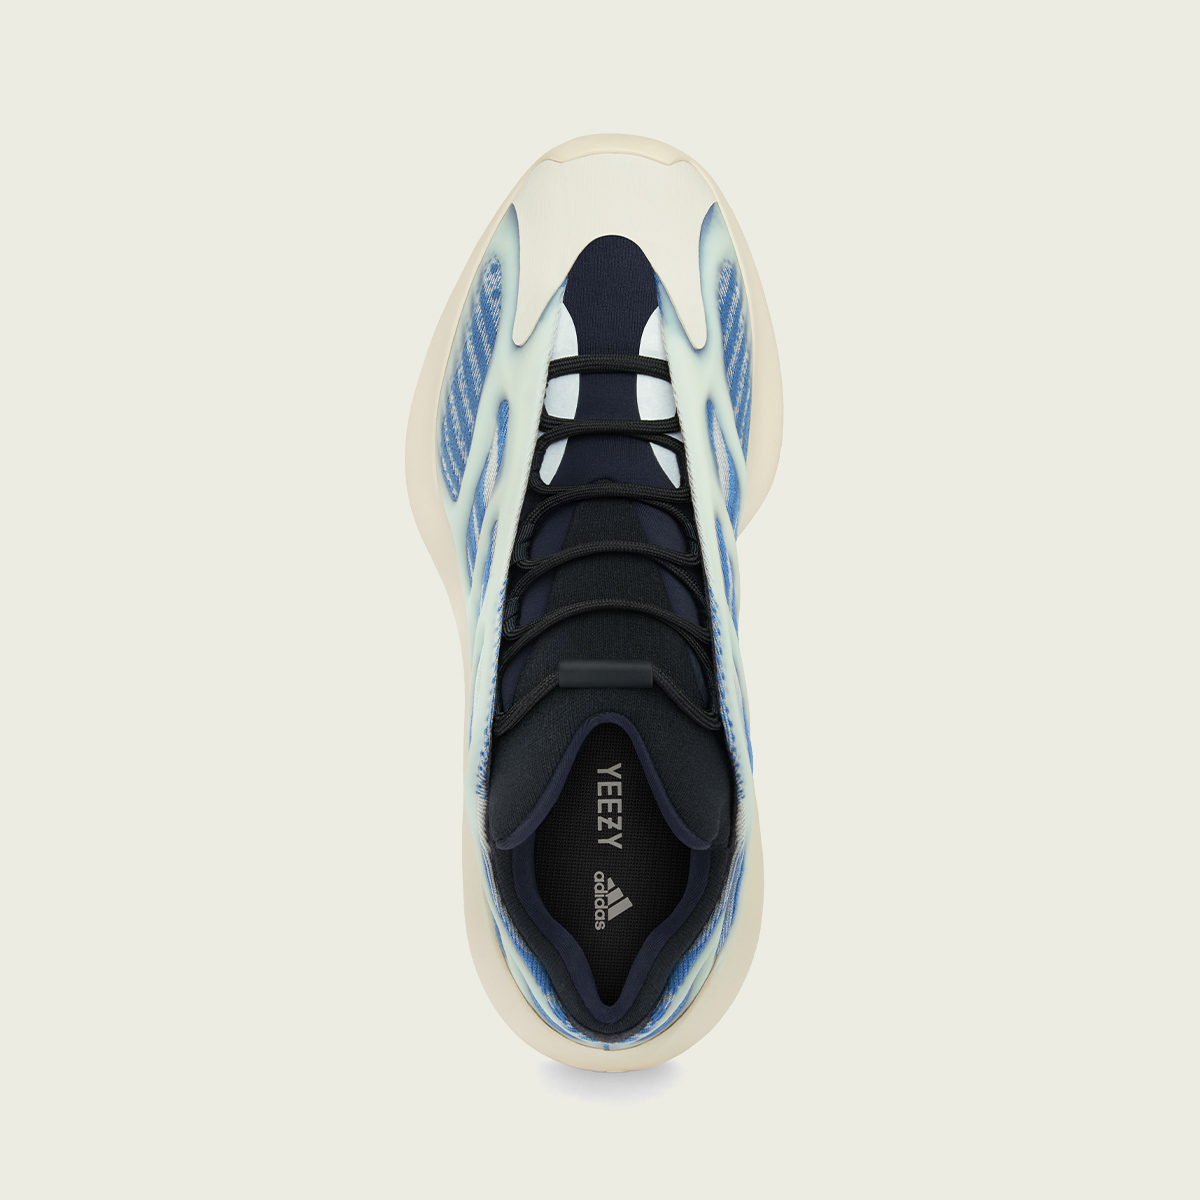 YEEZY 700 V3 'Kyanite' HIP raffle